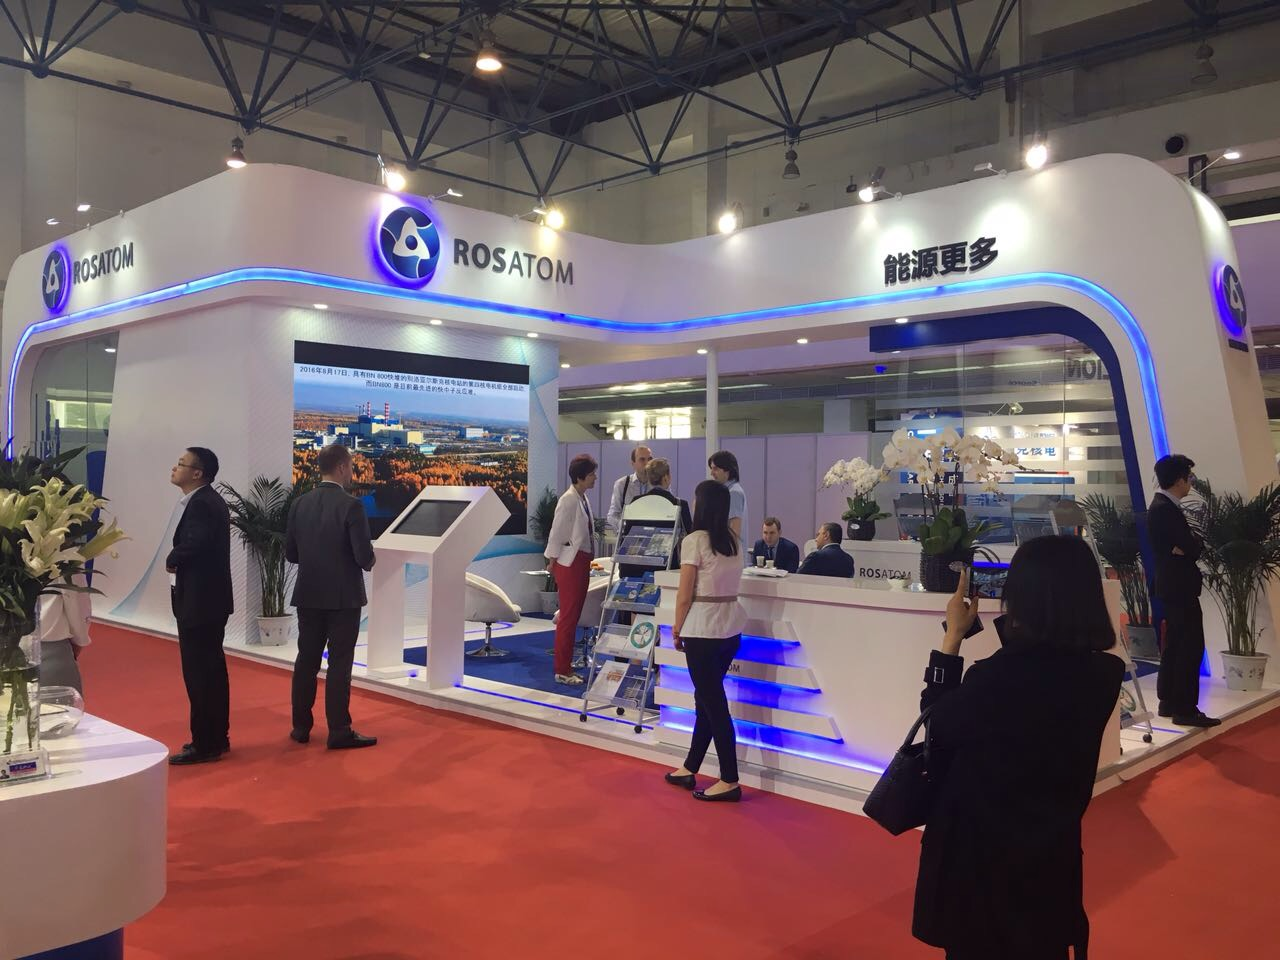 Rosatom participates in 12th China International Exhibition on Nuclear Power Industry